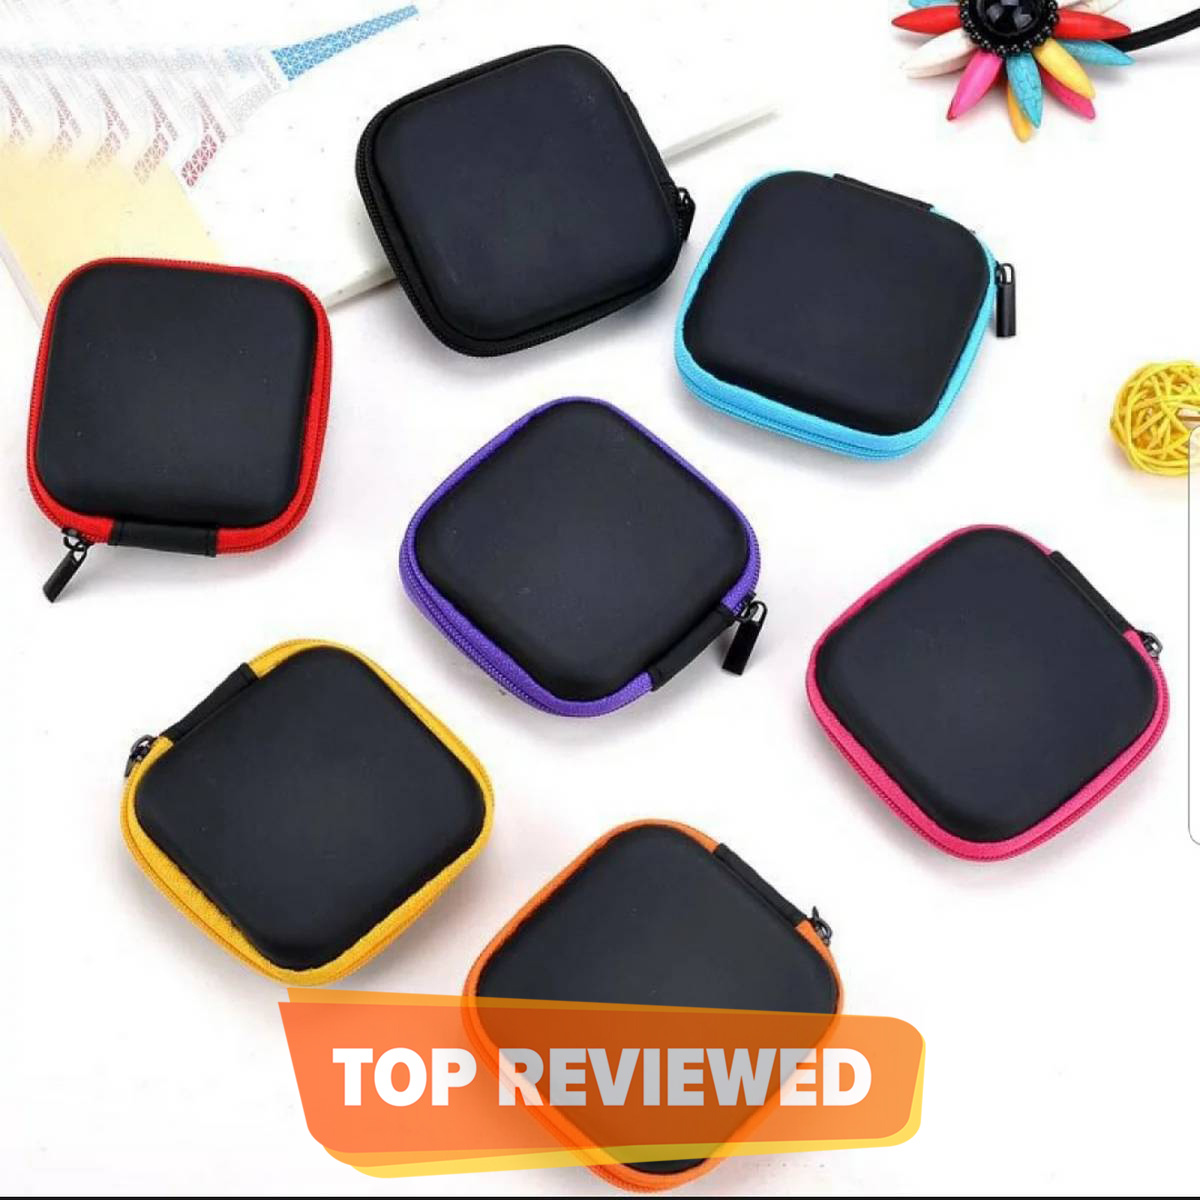 Handfree Cover Charger Hard Case eva Earphone Earbuds Handfree Square Shape Storage Handsfree Cable Key Pouch Zipper Fabric Saftey Mini Box